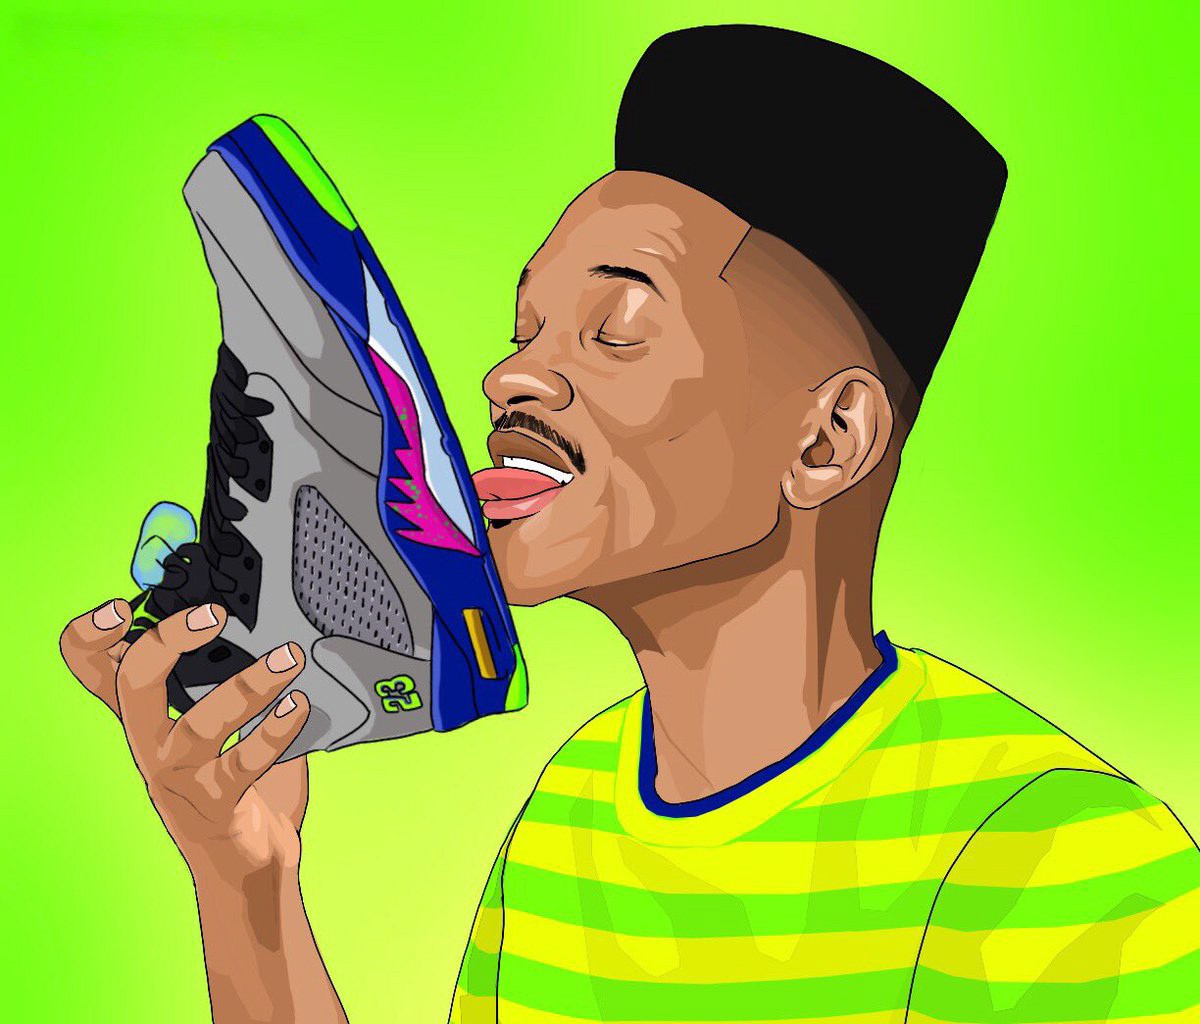 It S Not Unusual The Fresh Prince Of Bel Air Fan Art You Never Knew You Needed By Paco Taylor Medium